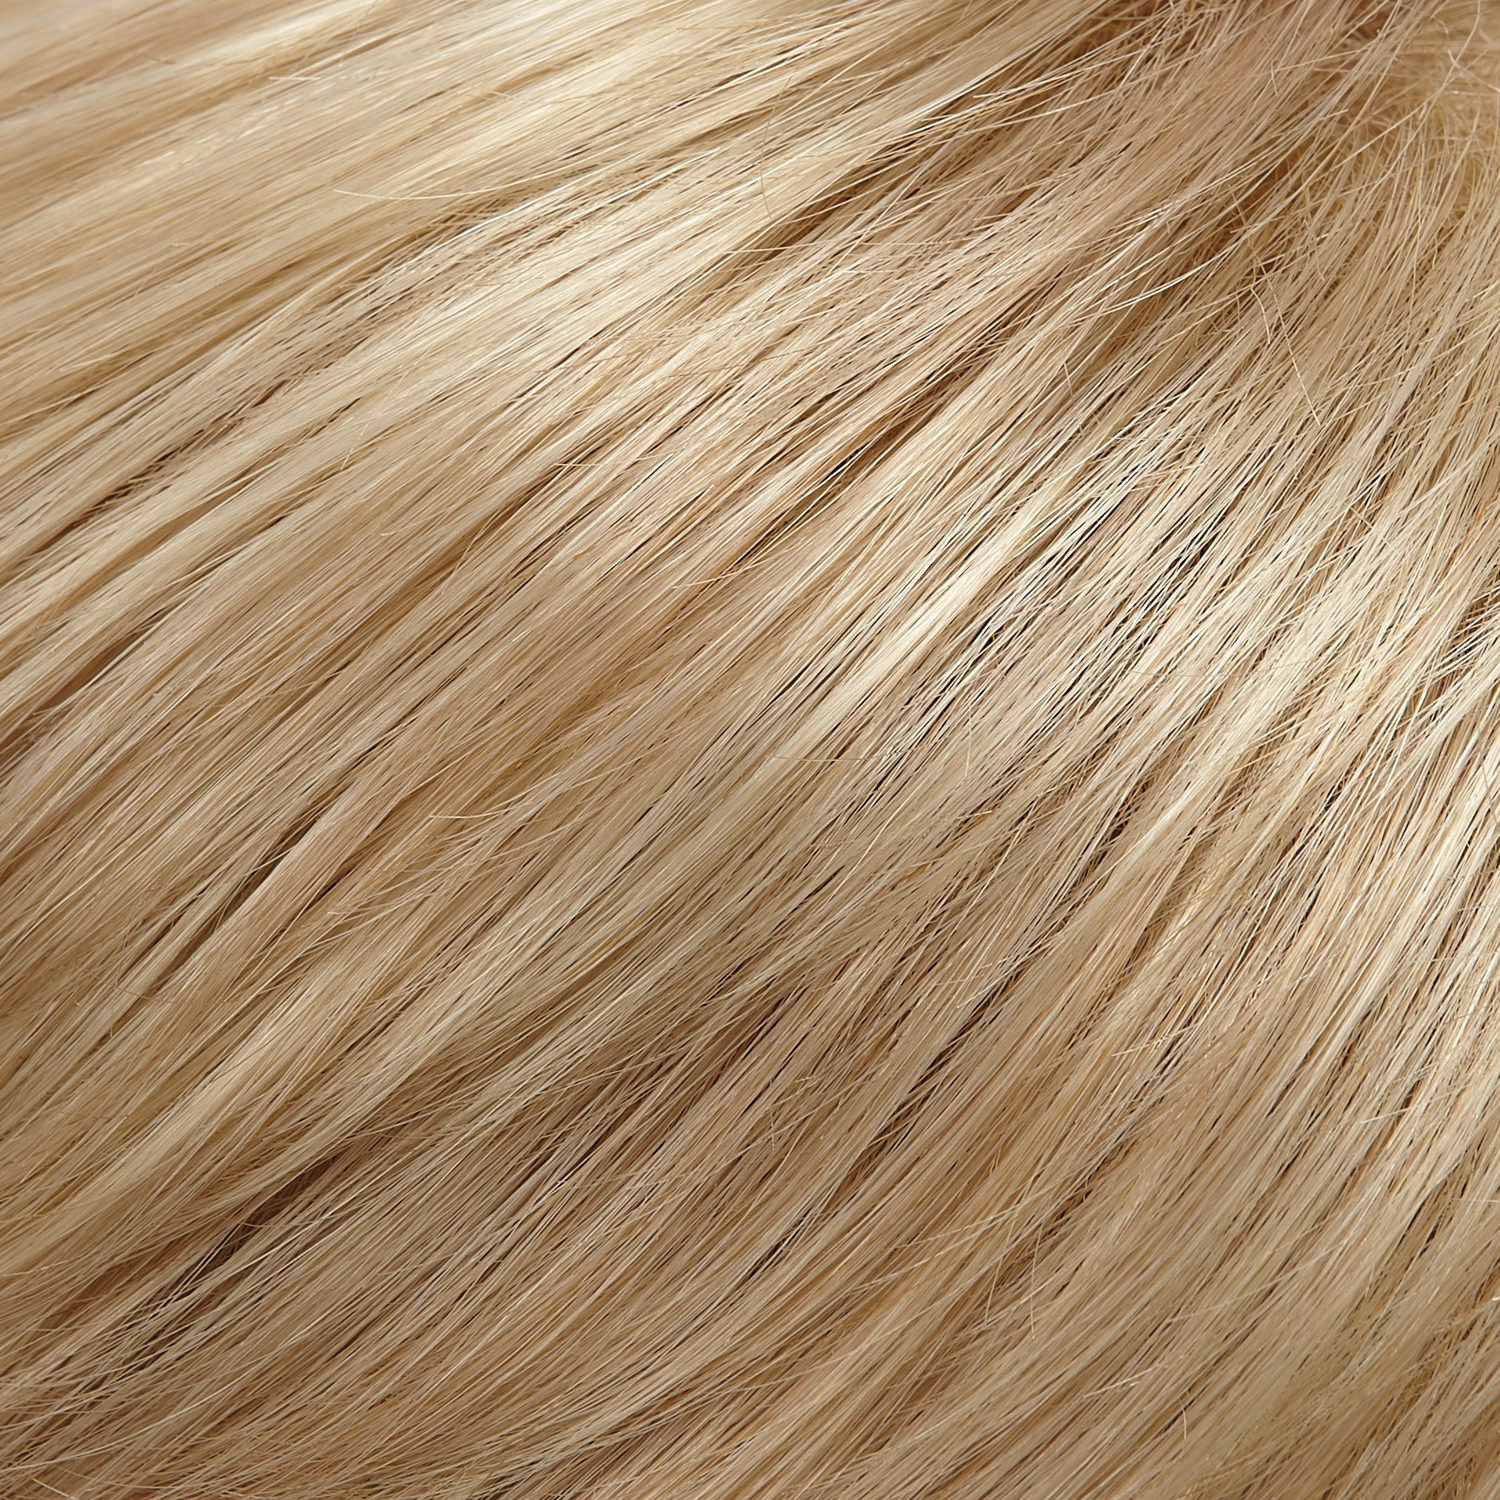 613F16 - Pale Natural Golden Blonde & Light Natural Blonde Blend with Light Natural